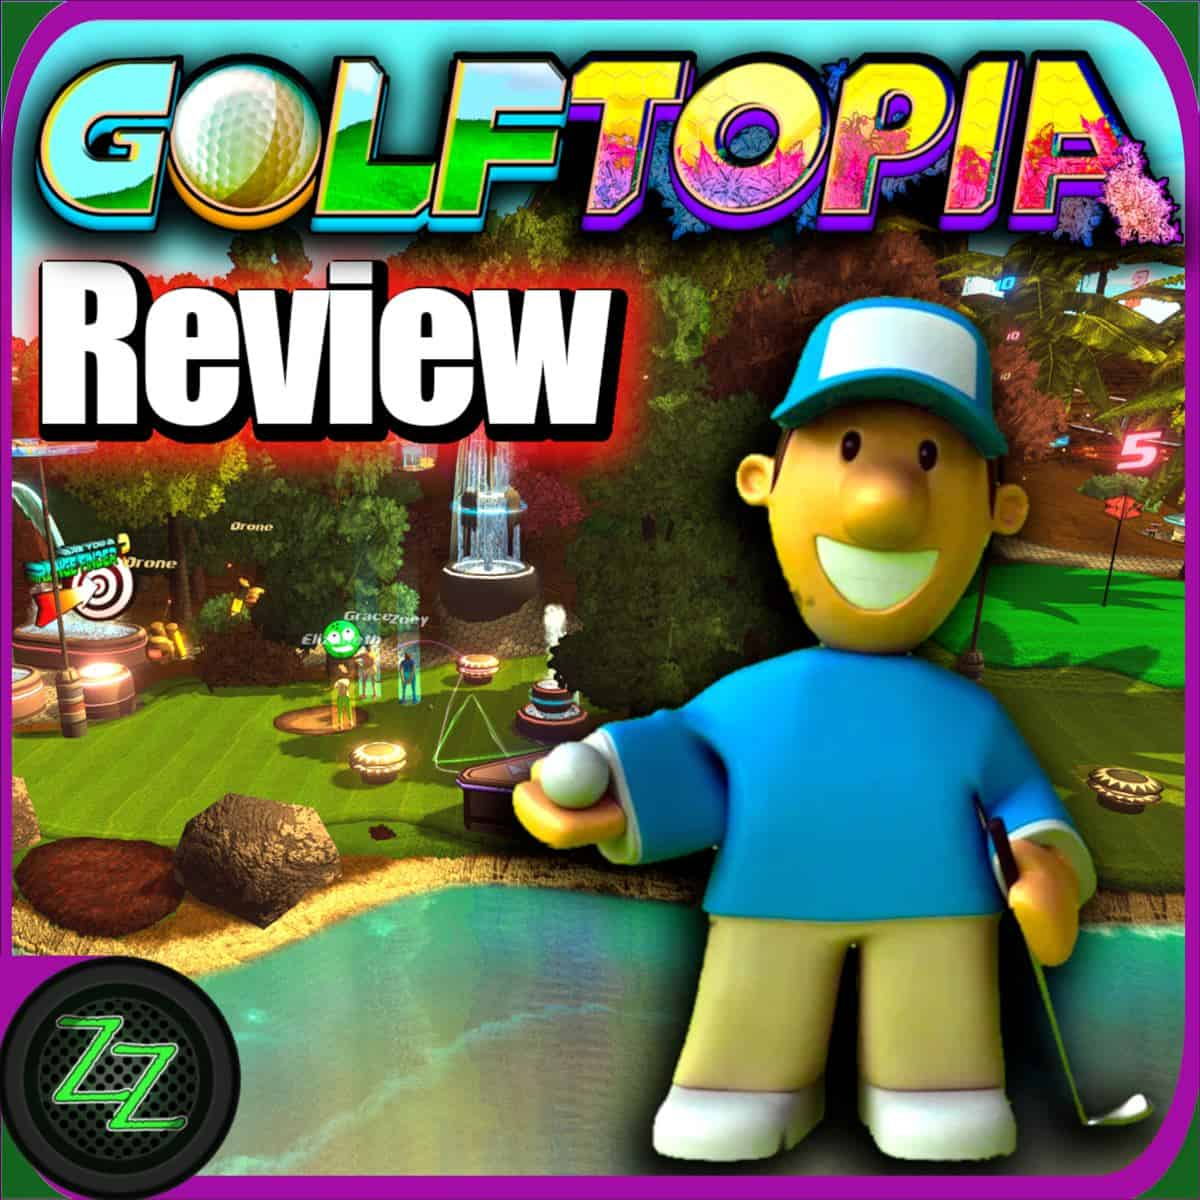 Golftopia Review-Test - SciFi Golfer in bunt - SimGolf or SimTycoon_q